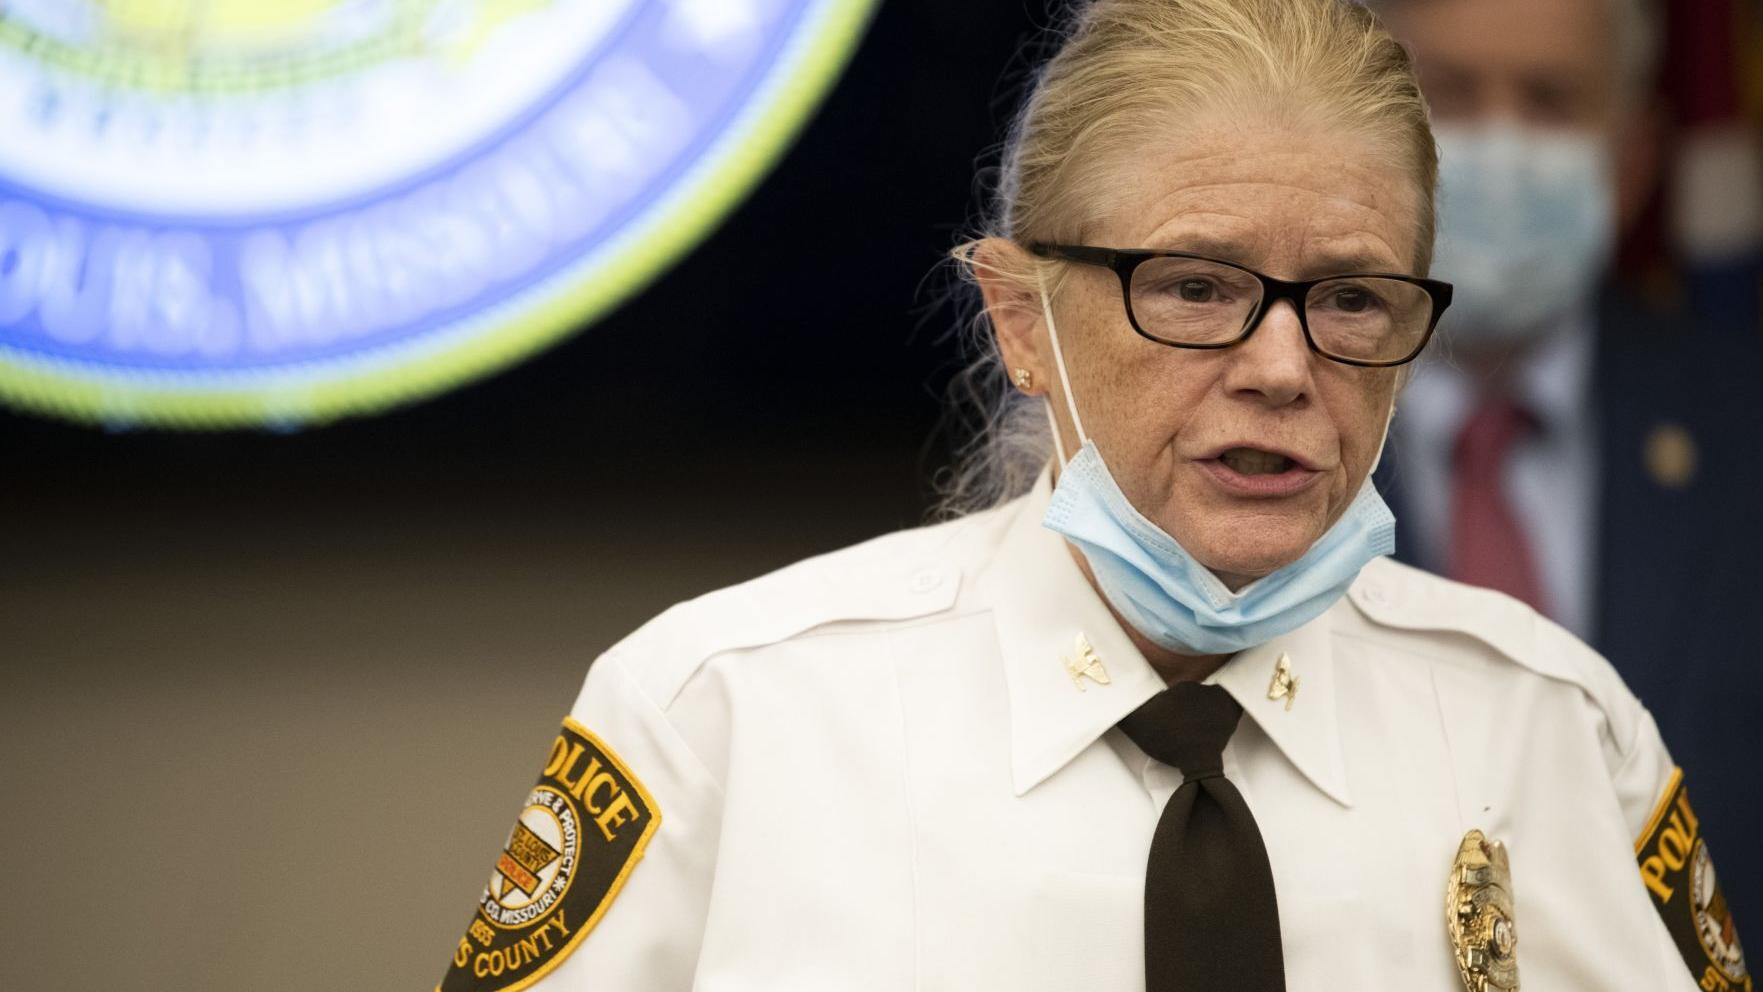 Messenger: St. Louis County Police dispatcher who used racial slur is related to the chief